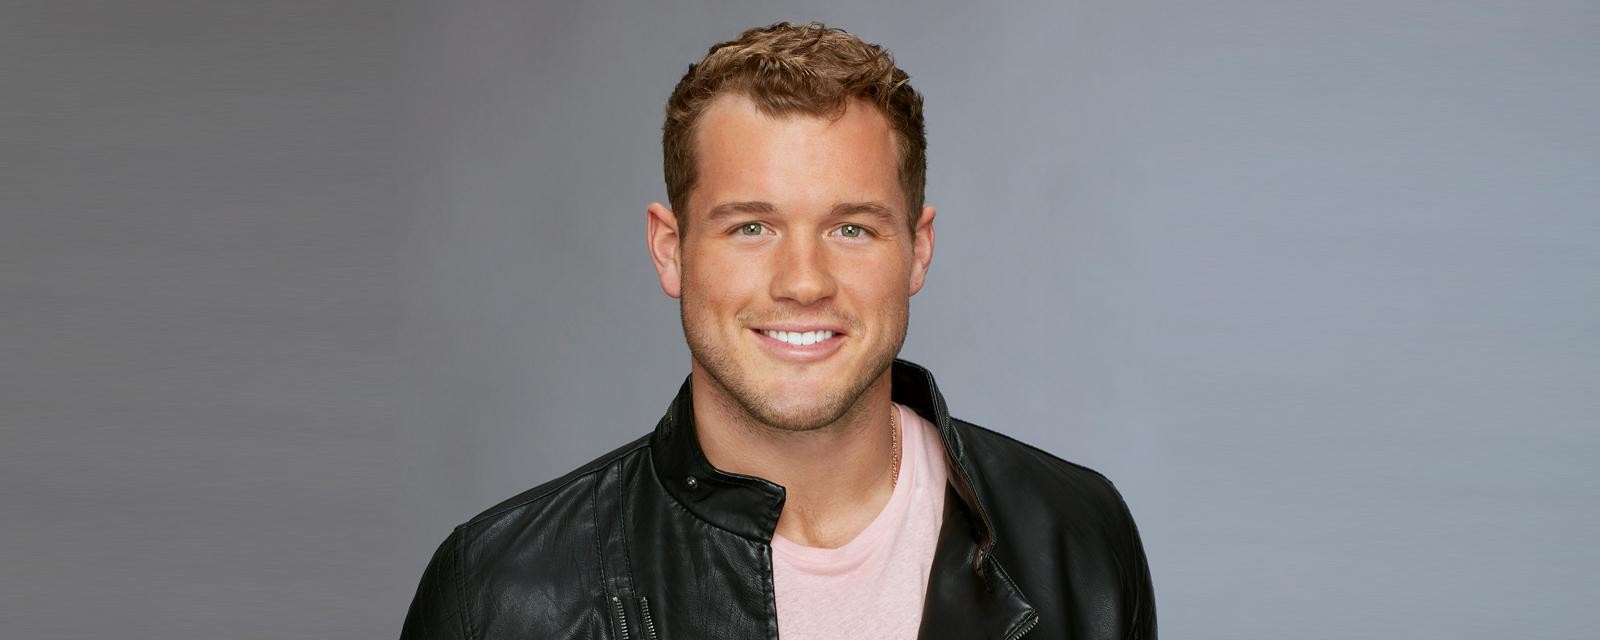 graphic regarding Bachelor Bracket Printable Nick referred to as Colton The Bachelorette